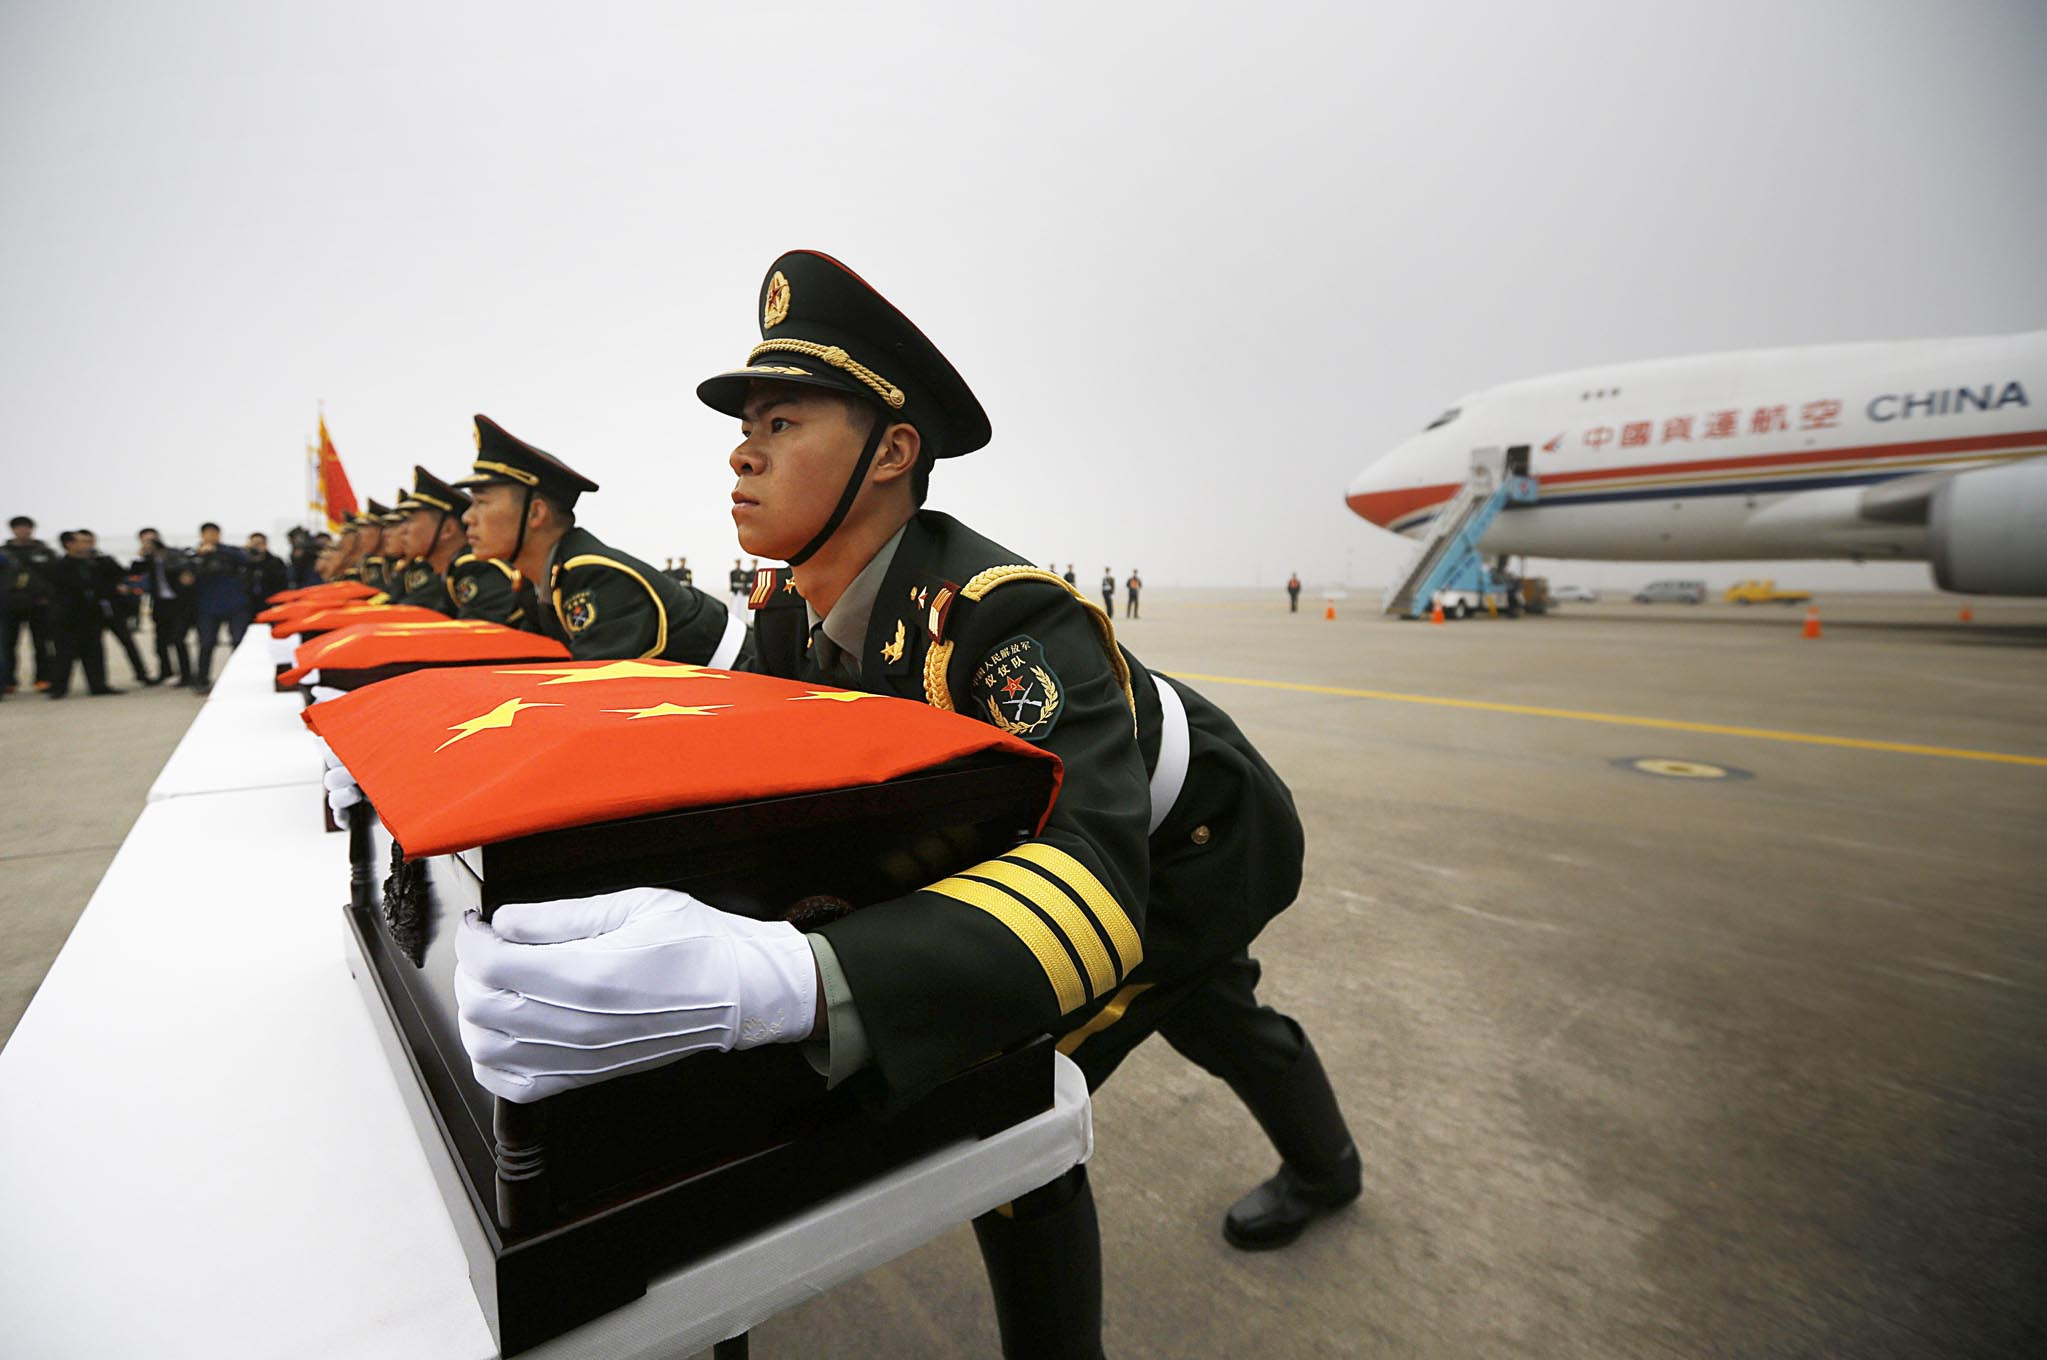 Chinese honour guards lift caskets containing the remains of Chinese soldiers during the handing over ceremony of the remains at the Incheon International Airport in Incheon